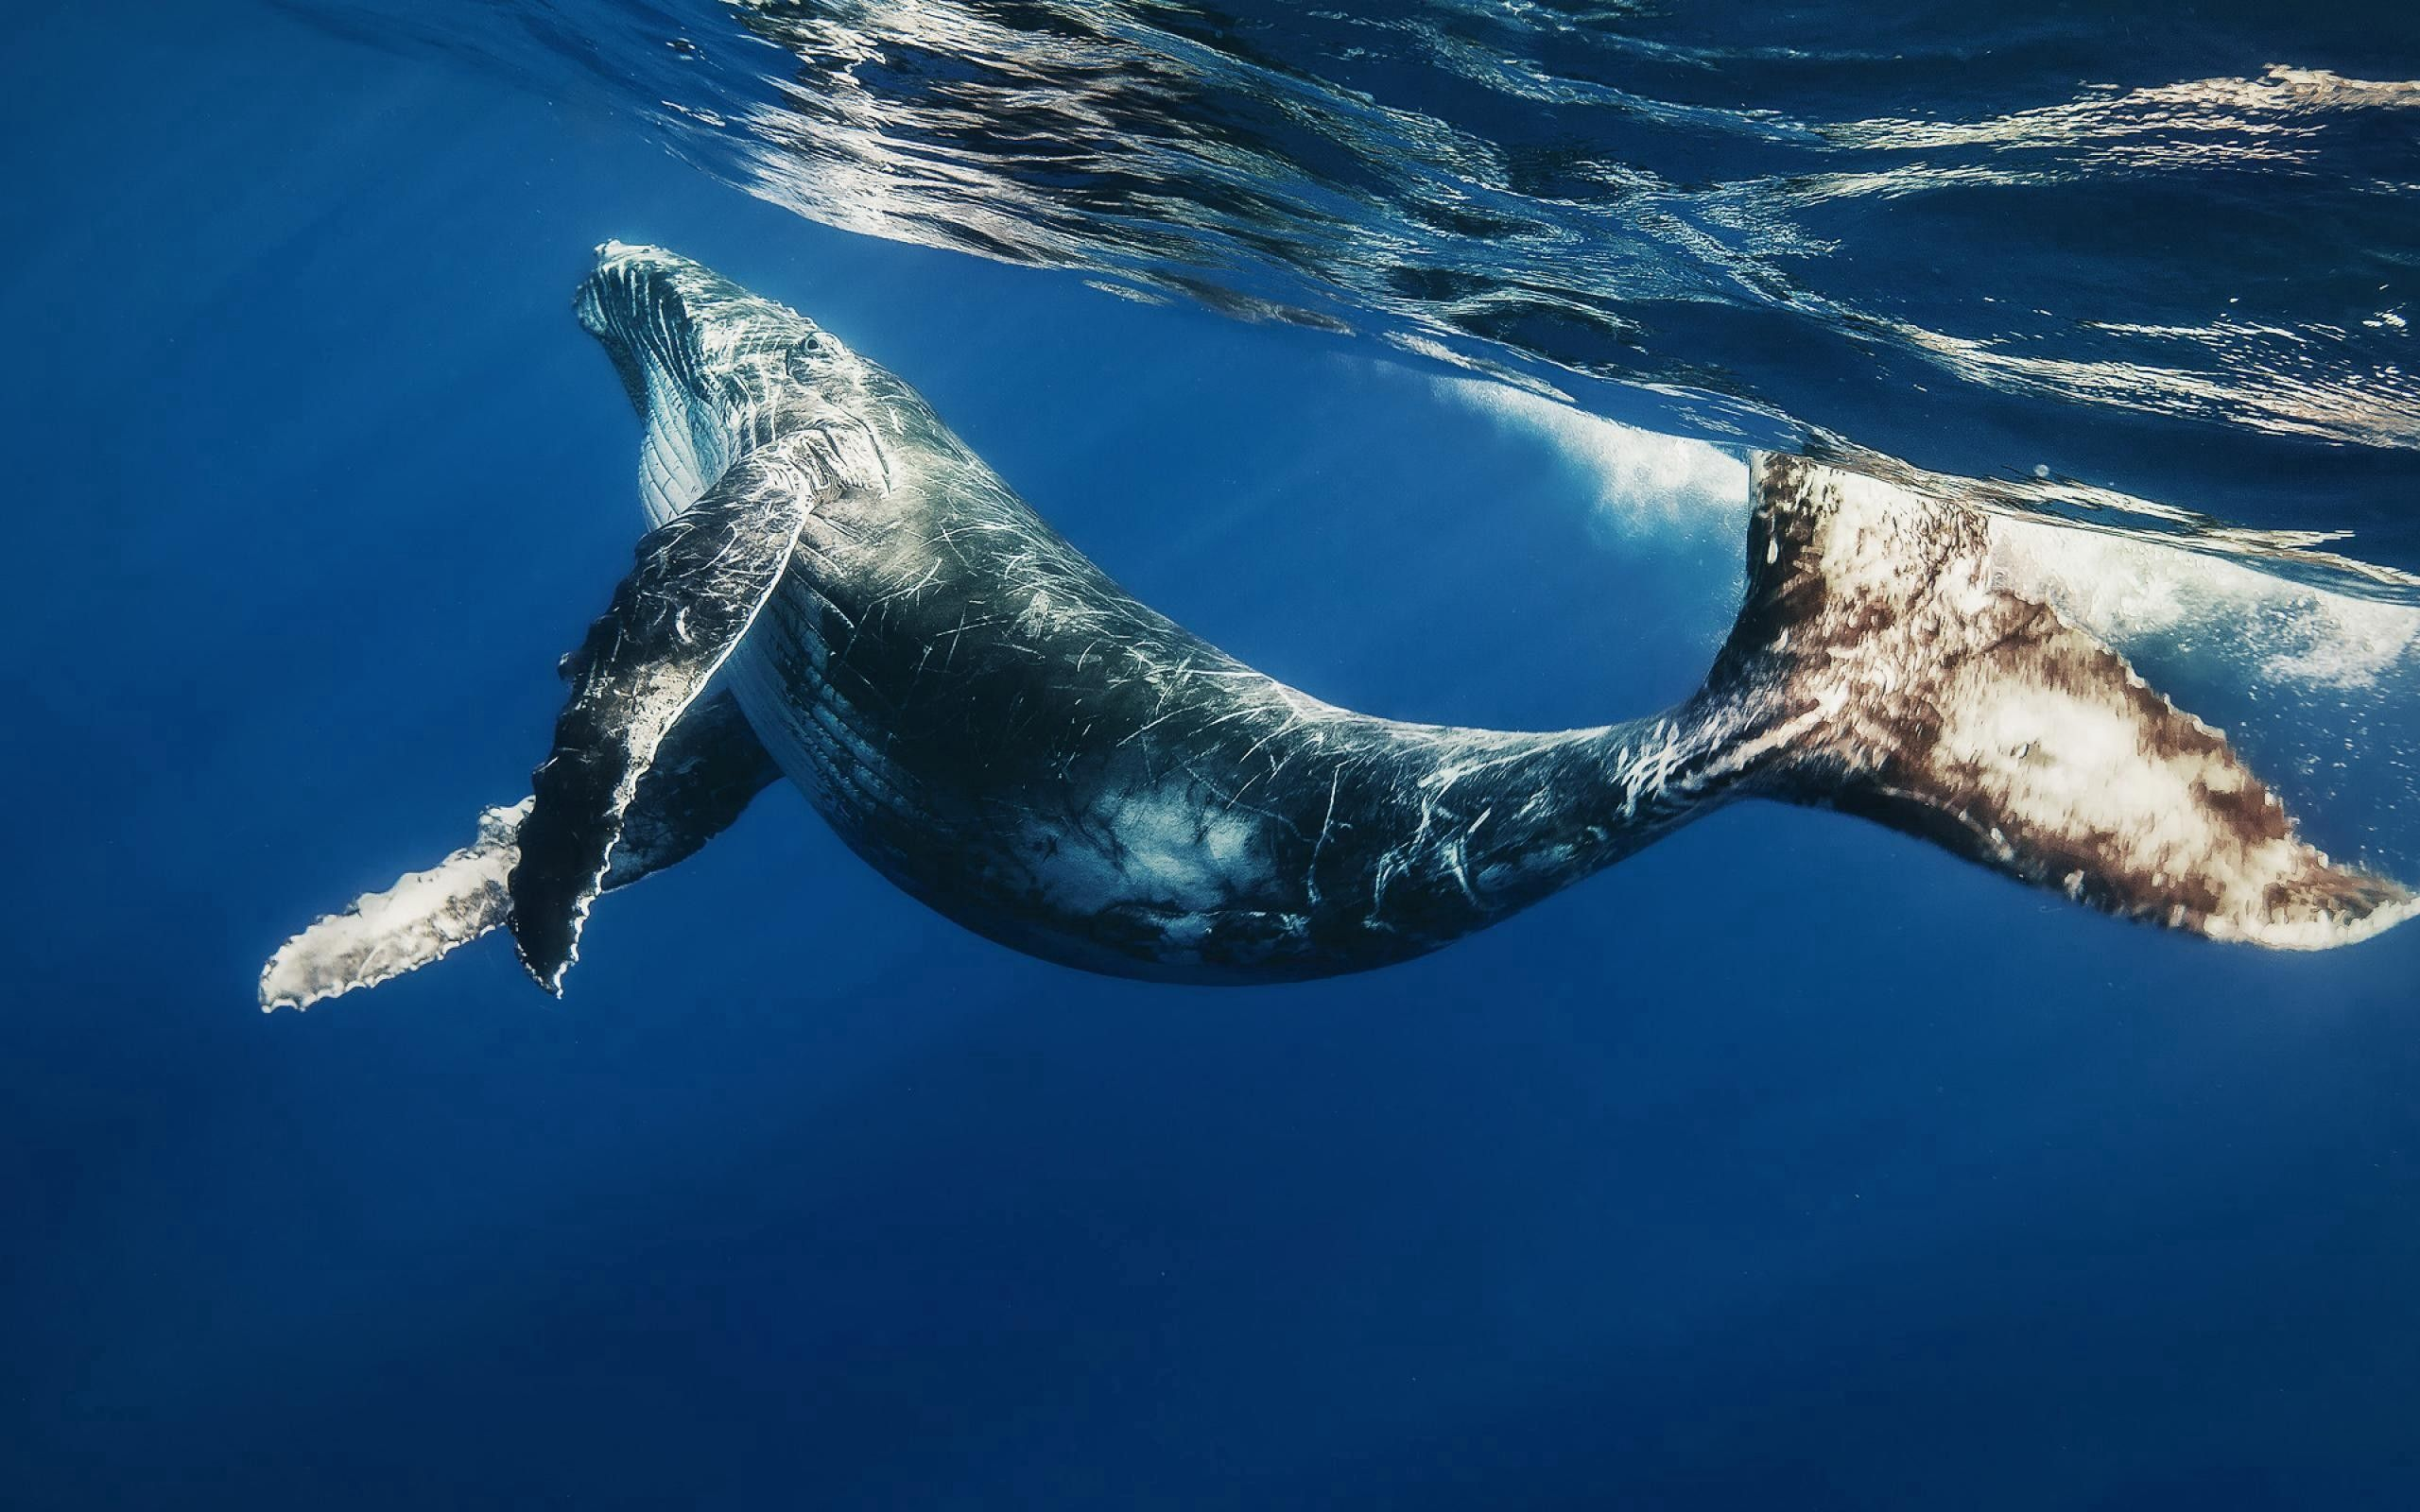 127612 download wallpaper Animals, Whale, To Swim, Swim, Under Water, Underwater, Submarine, Water screensavers and pictures for free